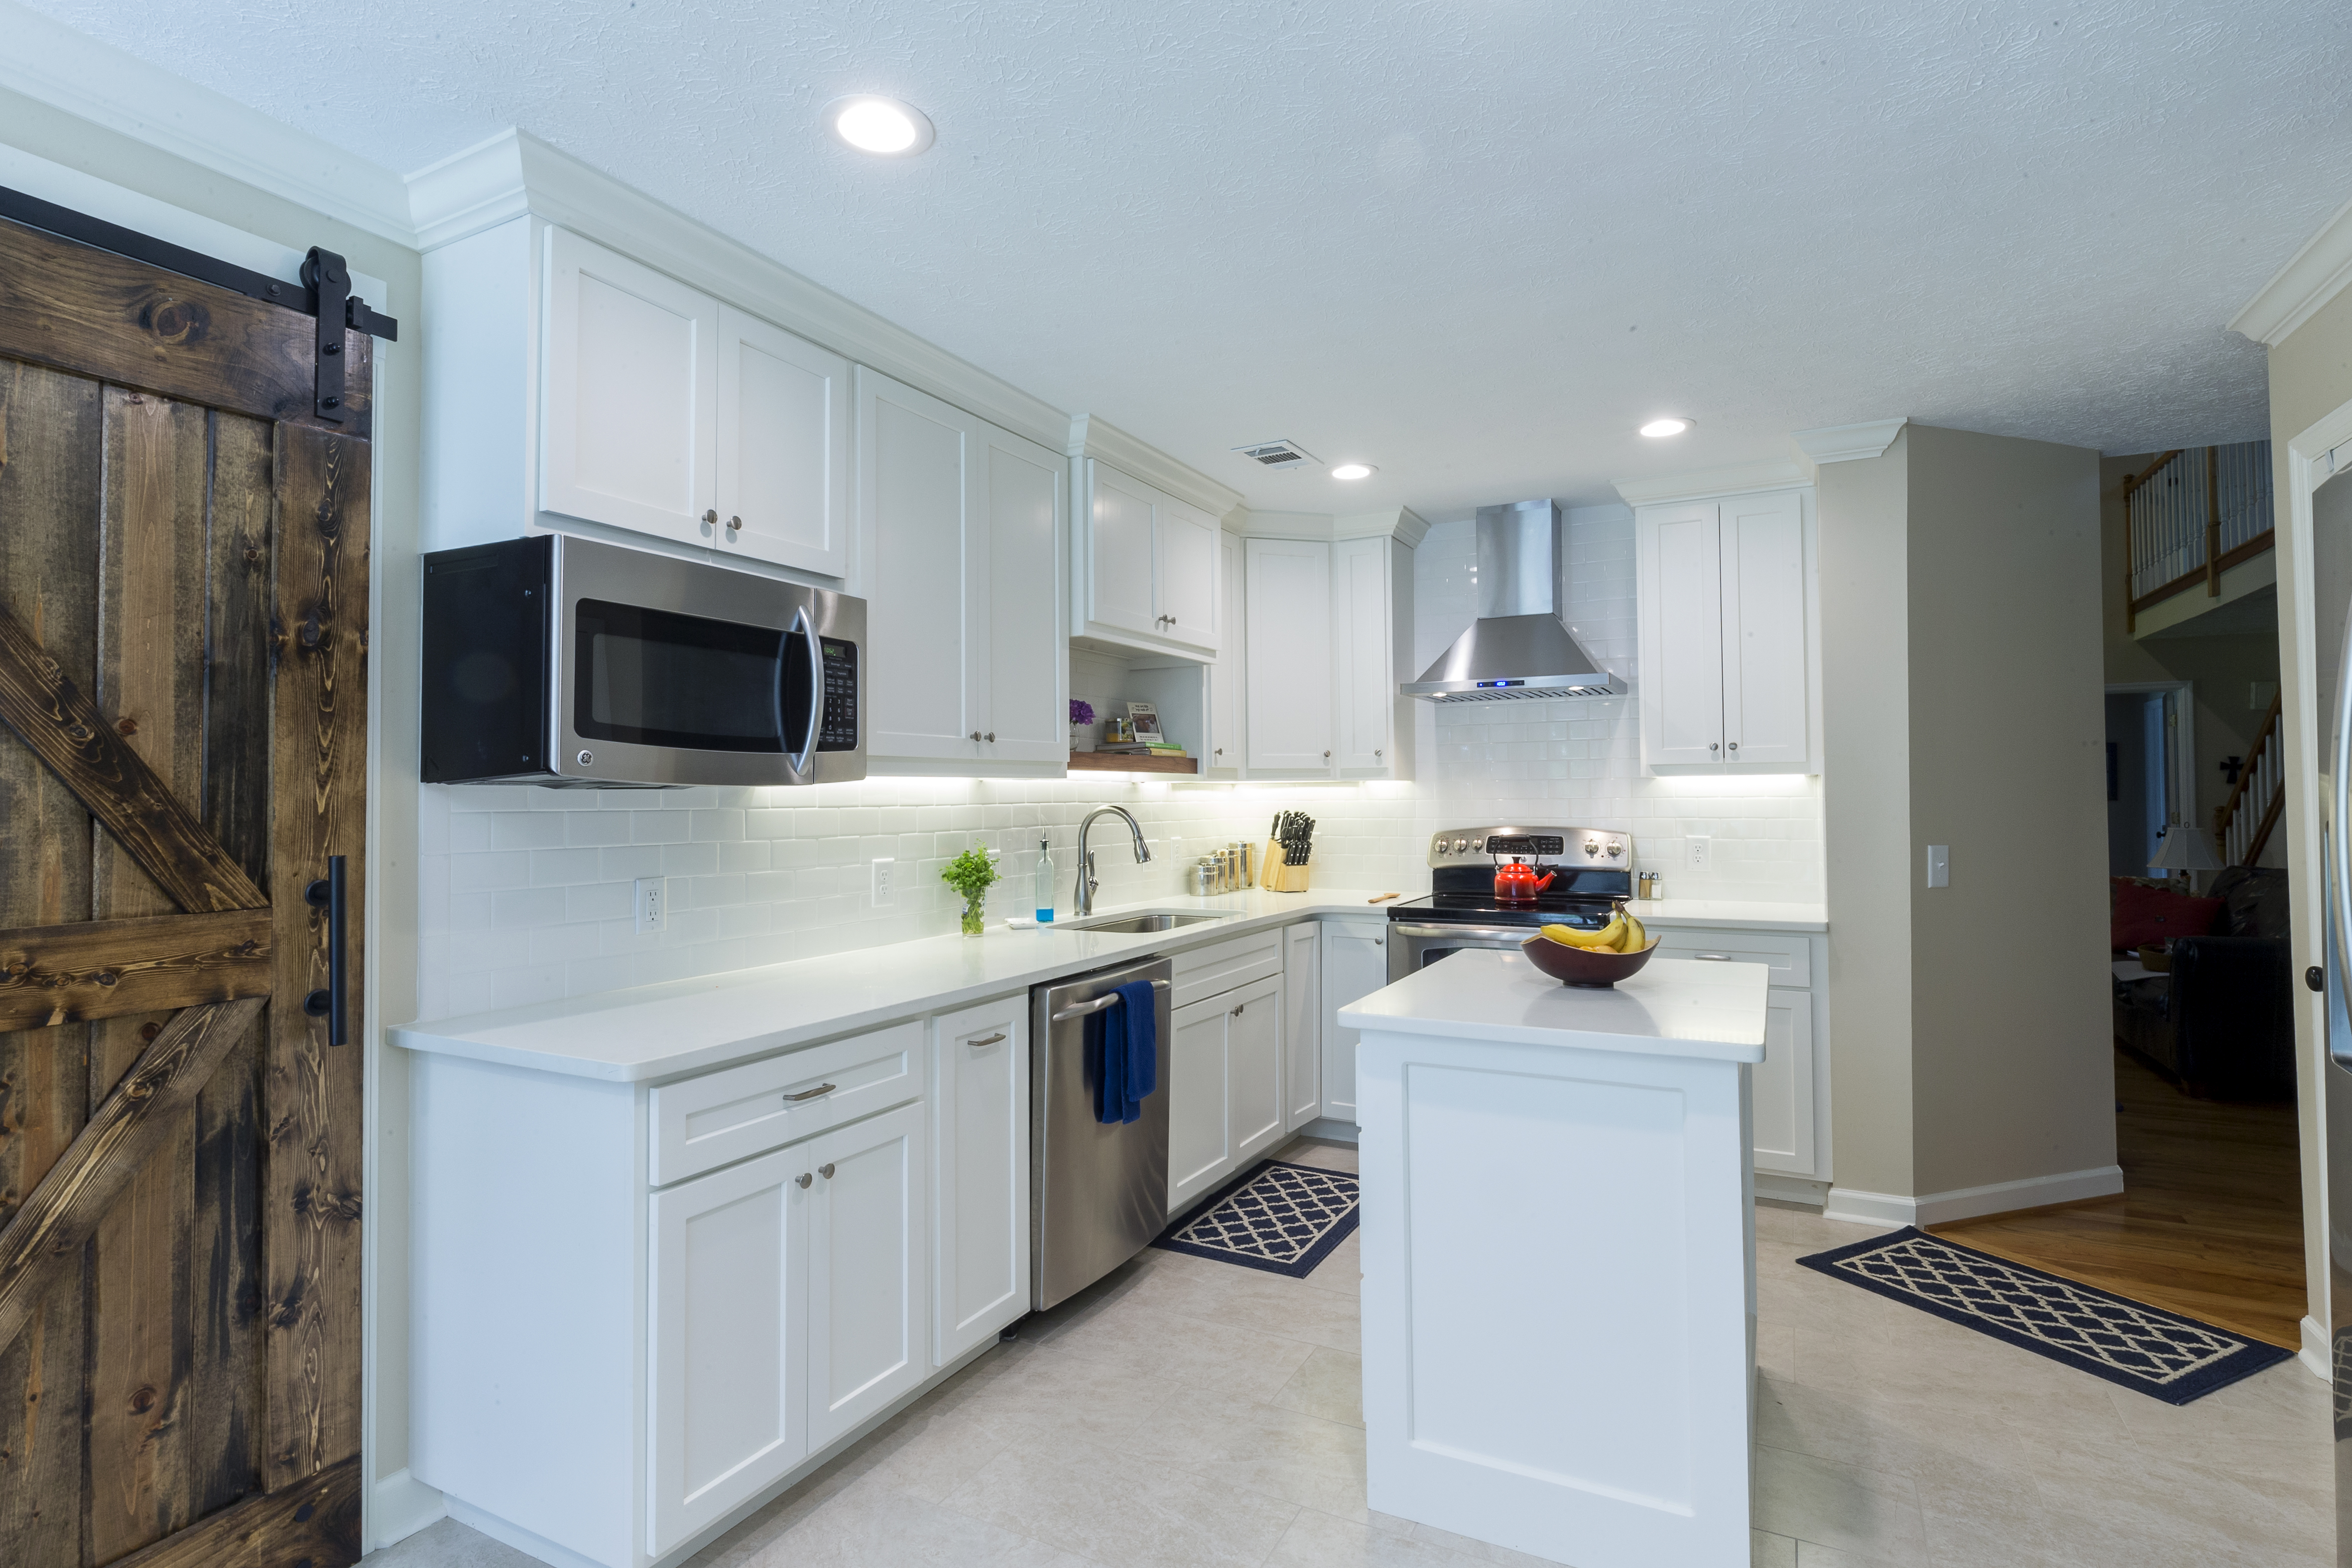 RESIDENTIAL-4018-OAKBOWERY-KITCHEN-2